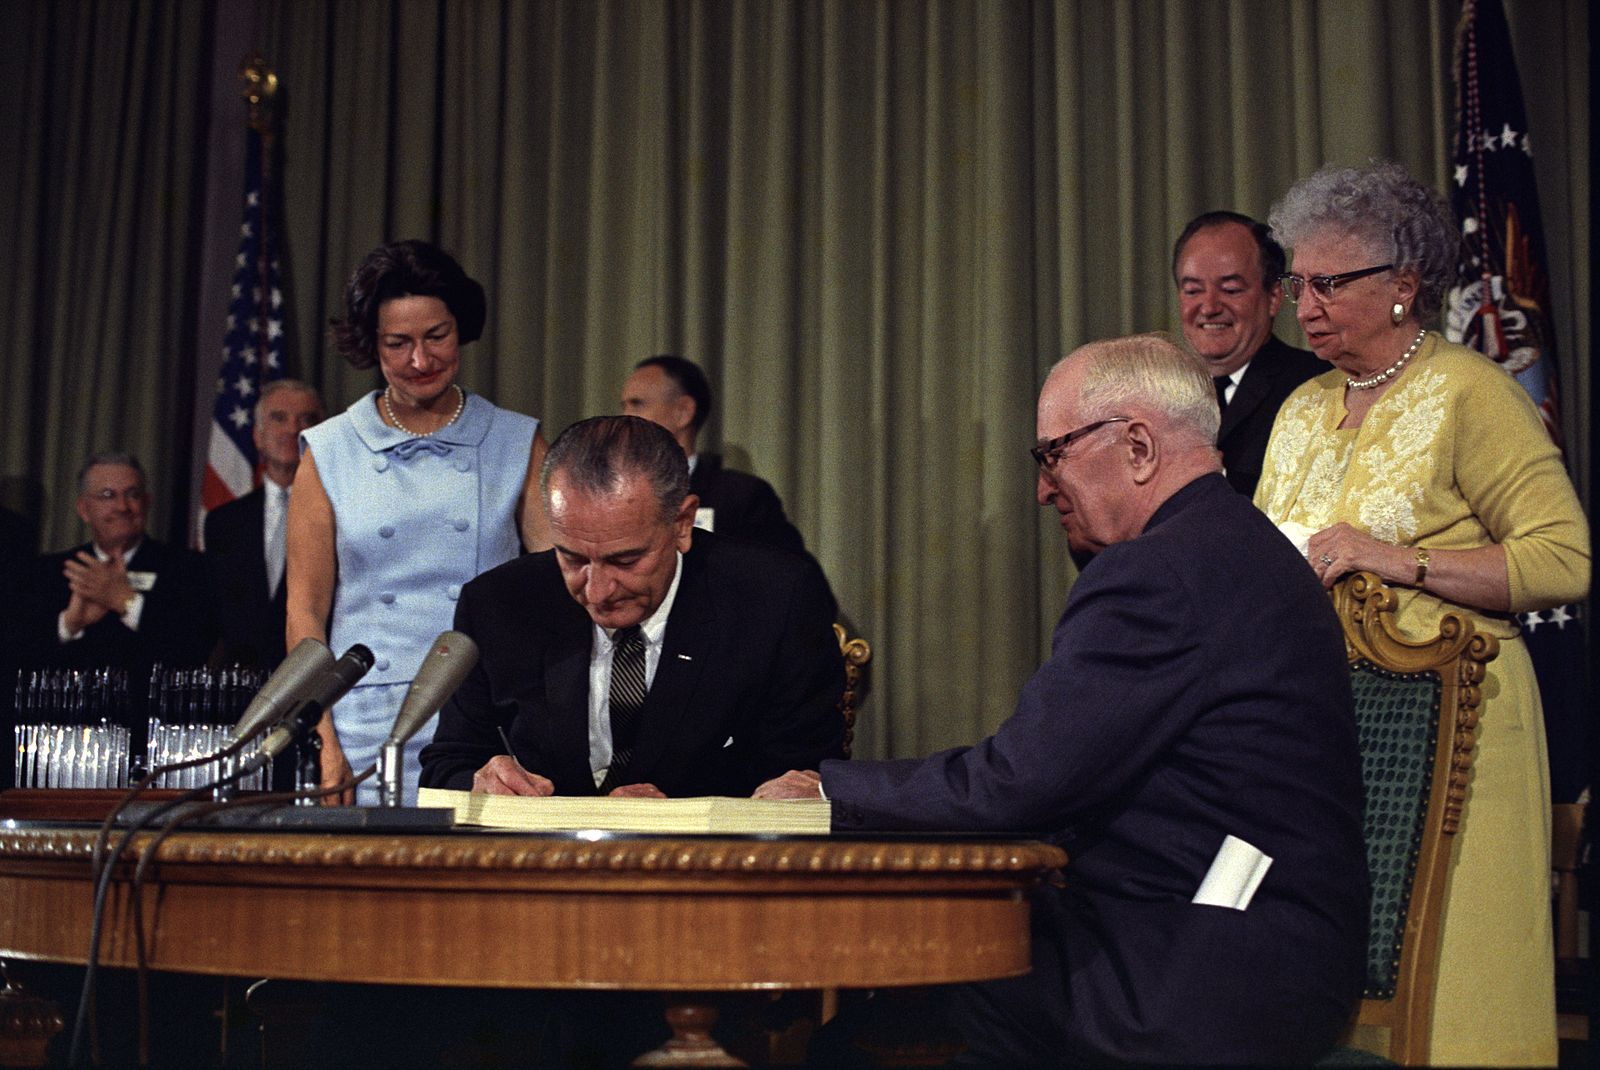 File:Lyndon Johnson signing Medicare bill, with Harry Truman, July 30, 1965.jpg